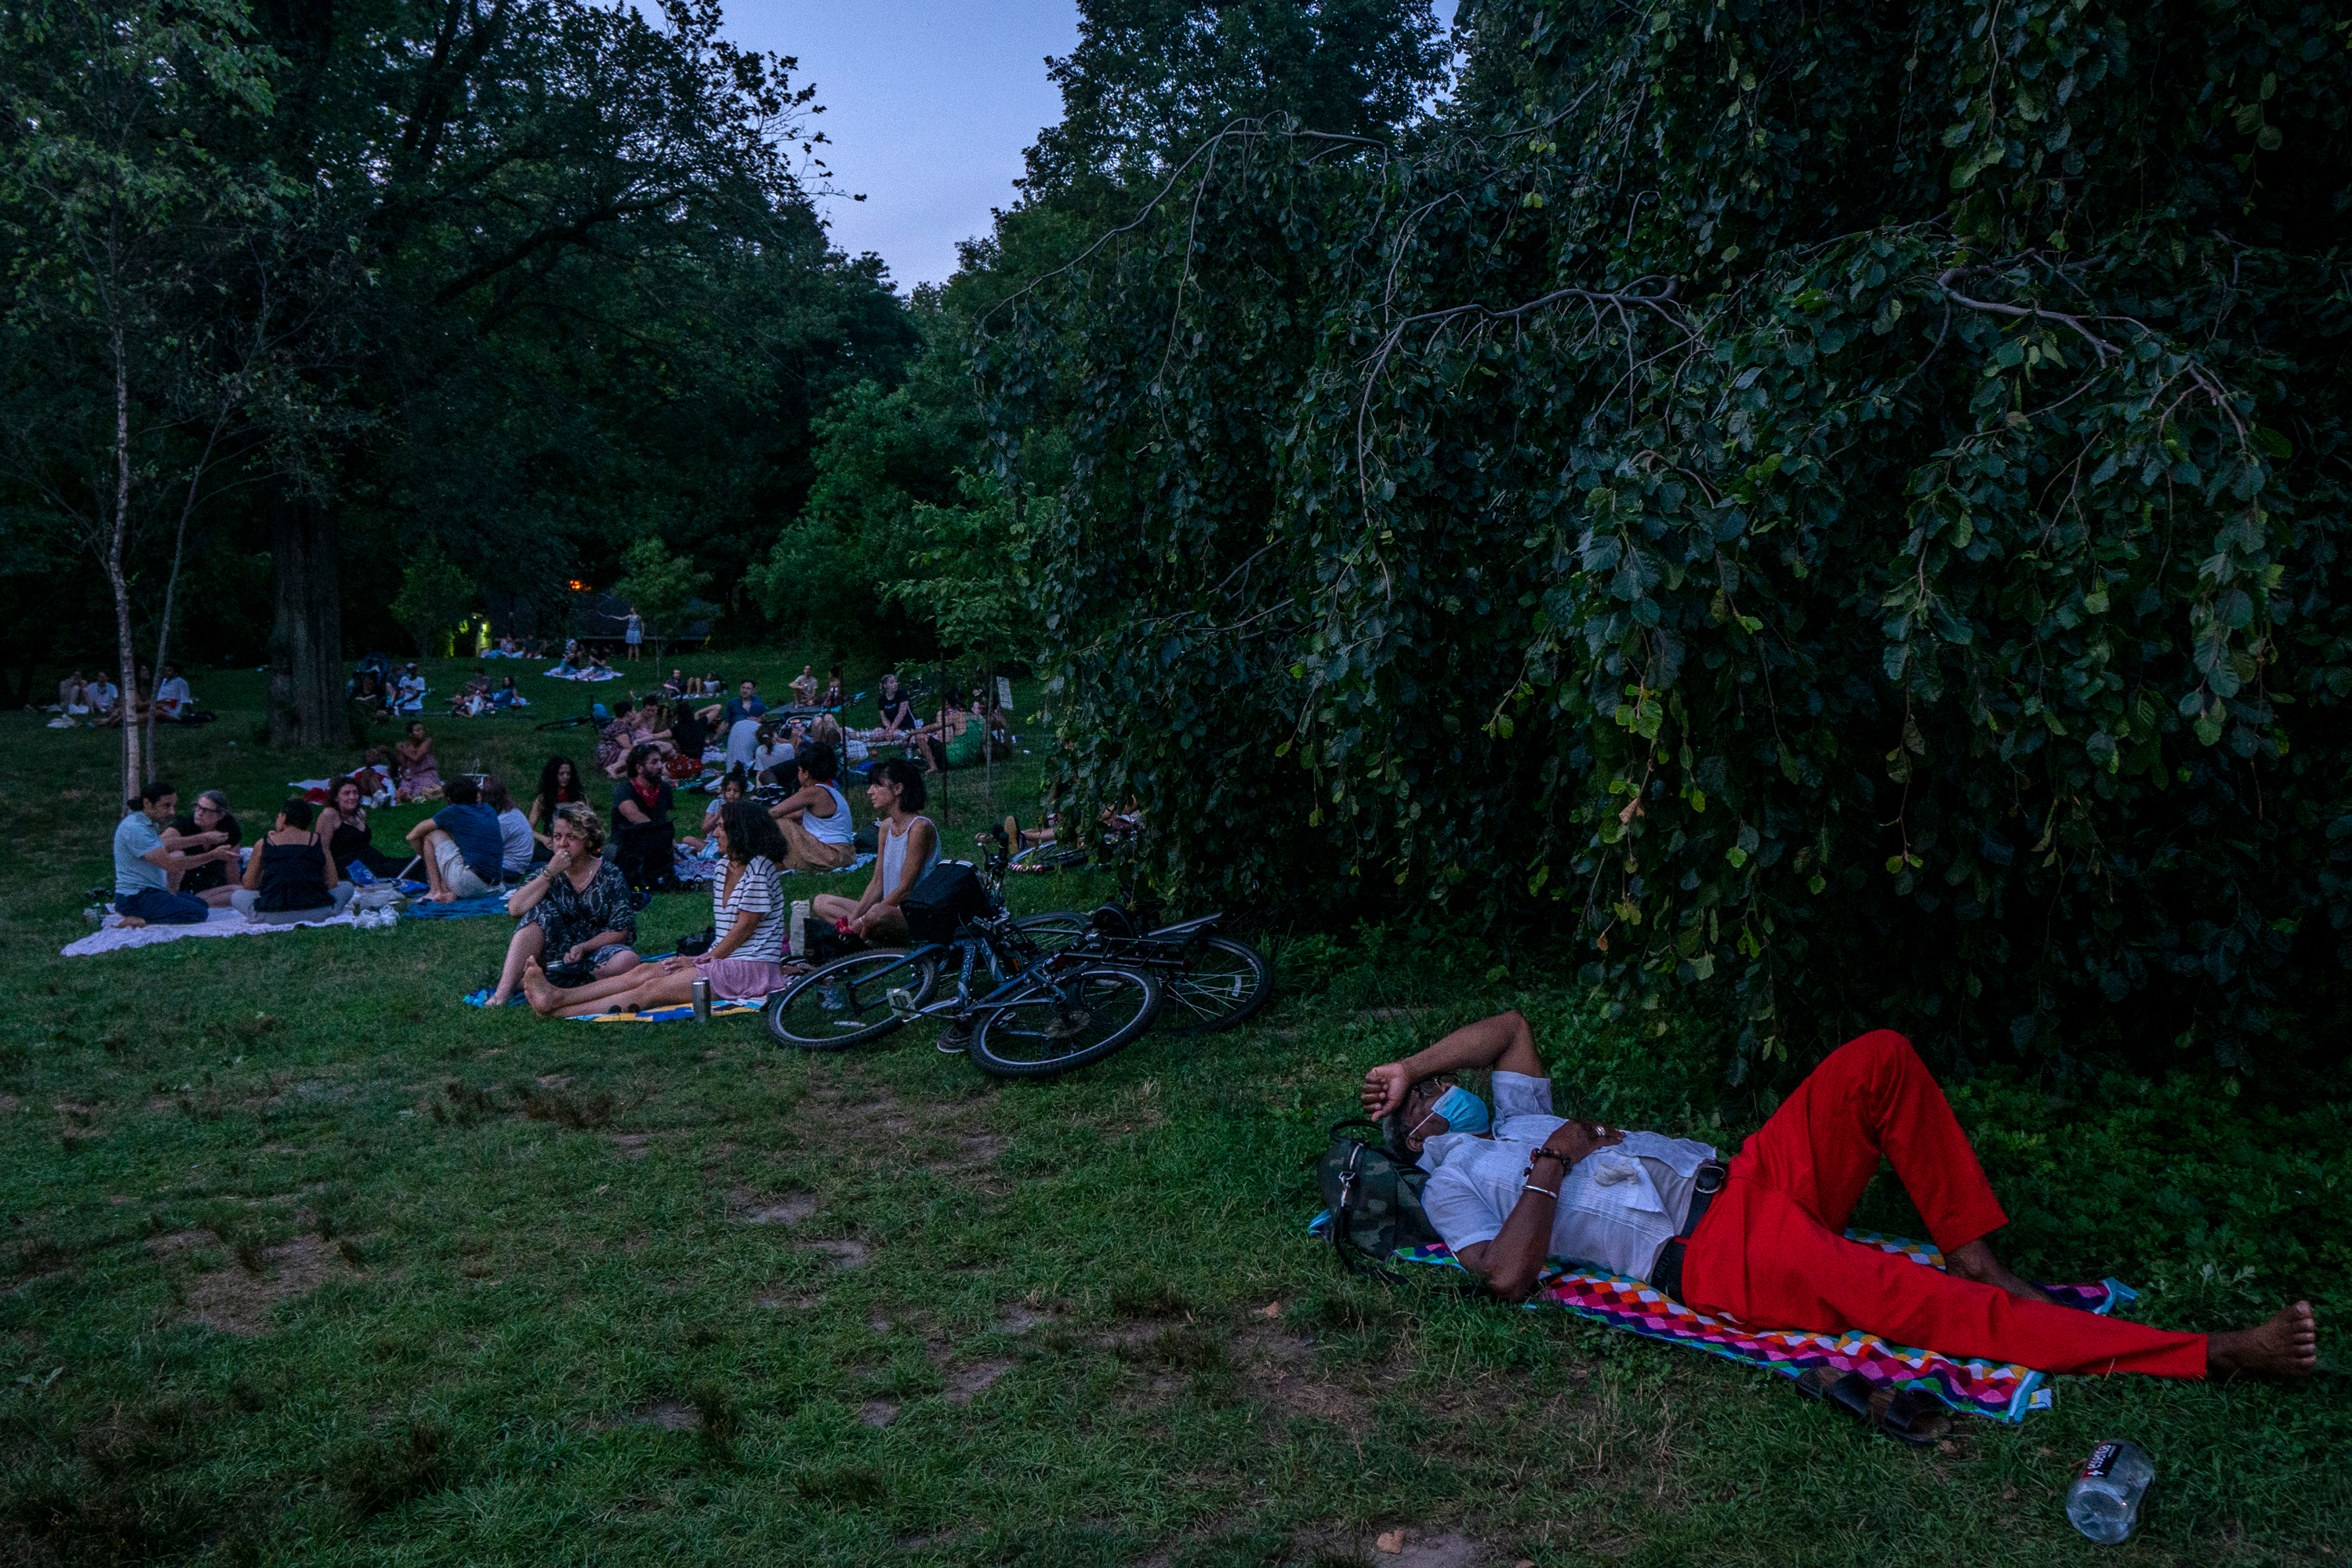 Brooklyn cools off in Prospect Park as a scorching summer day turned to night on July 19, 2020.